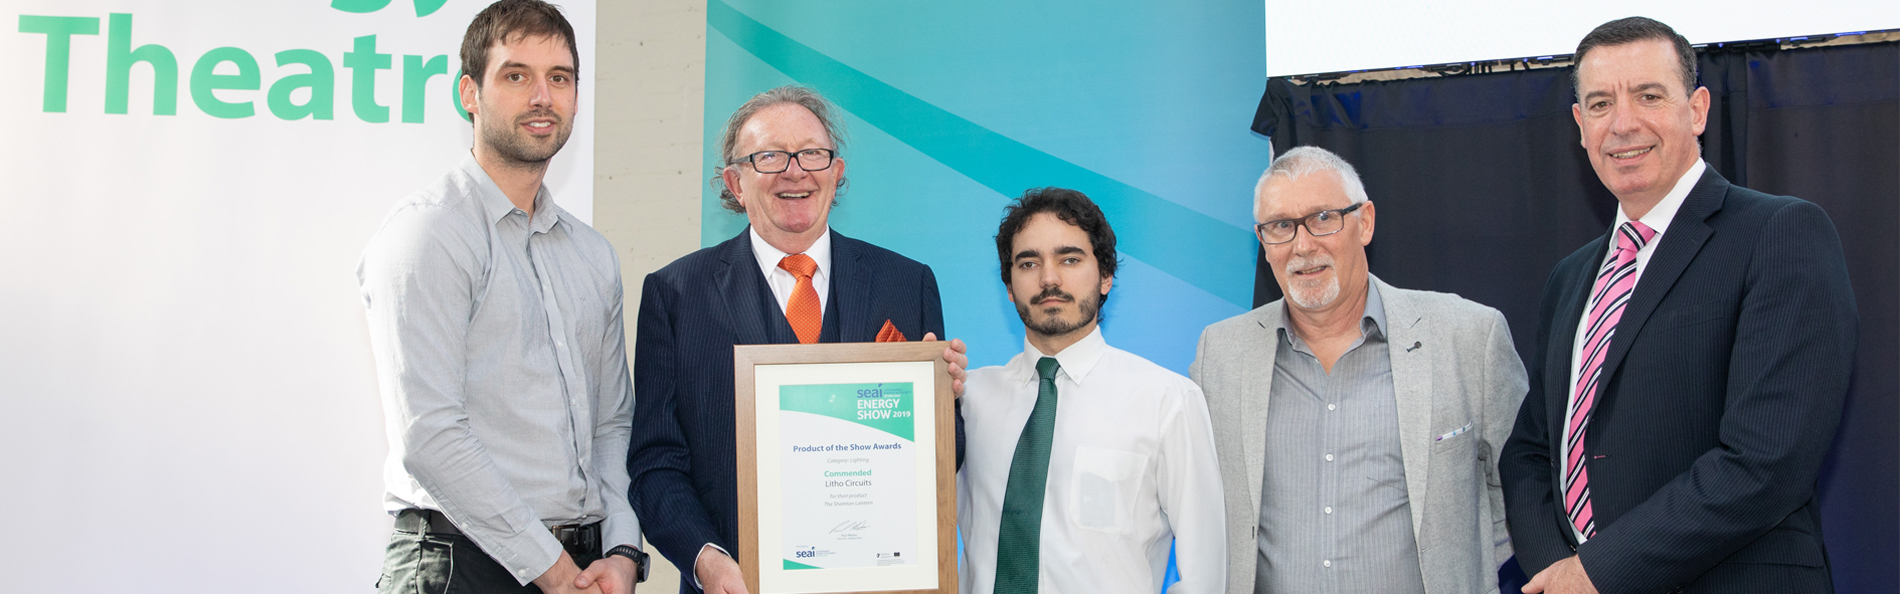 WINNER OF SUSTAINABLE ENERGY AUTHORITY IRELAND (SEAI) LIGHTING AWARD 2017 + 2018+ 2019 COMMENDATION